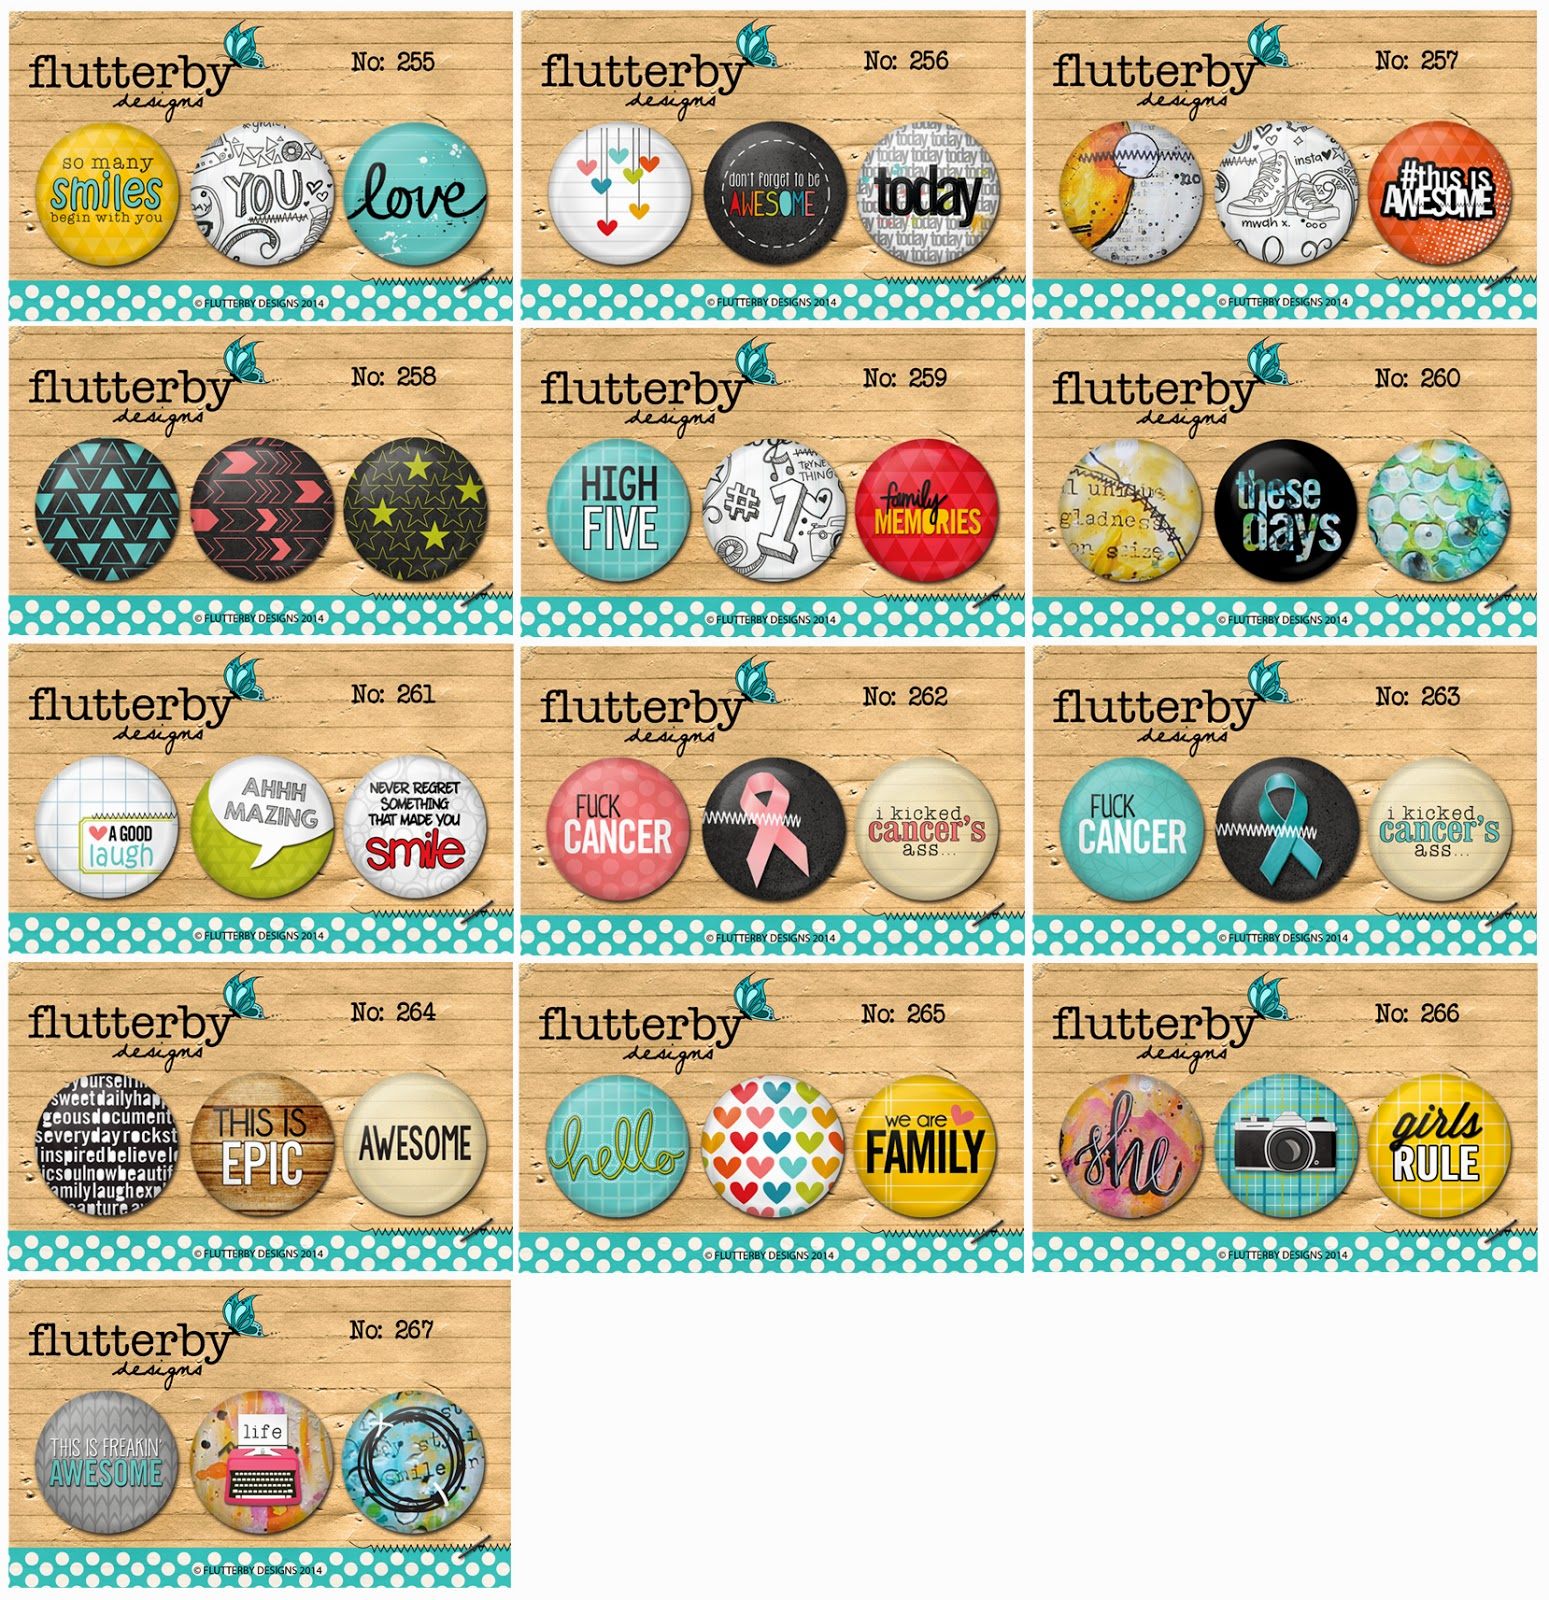 http://flutterbydesigns.bigcartel.com/product/1-flair-buttons-24